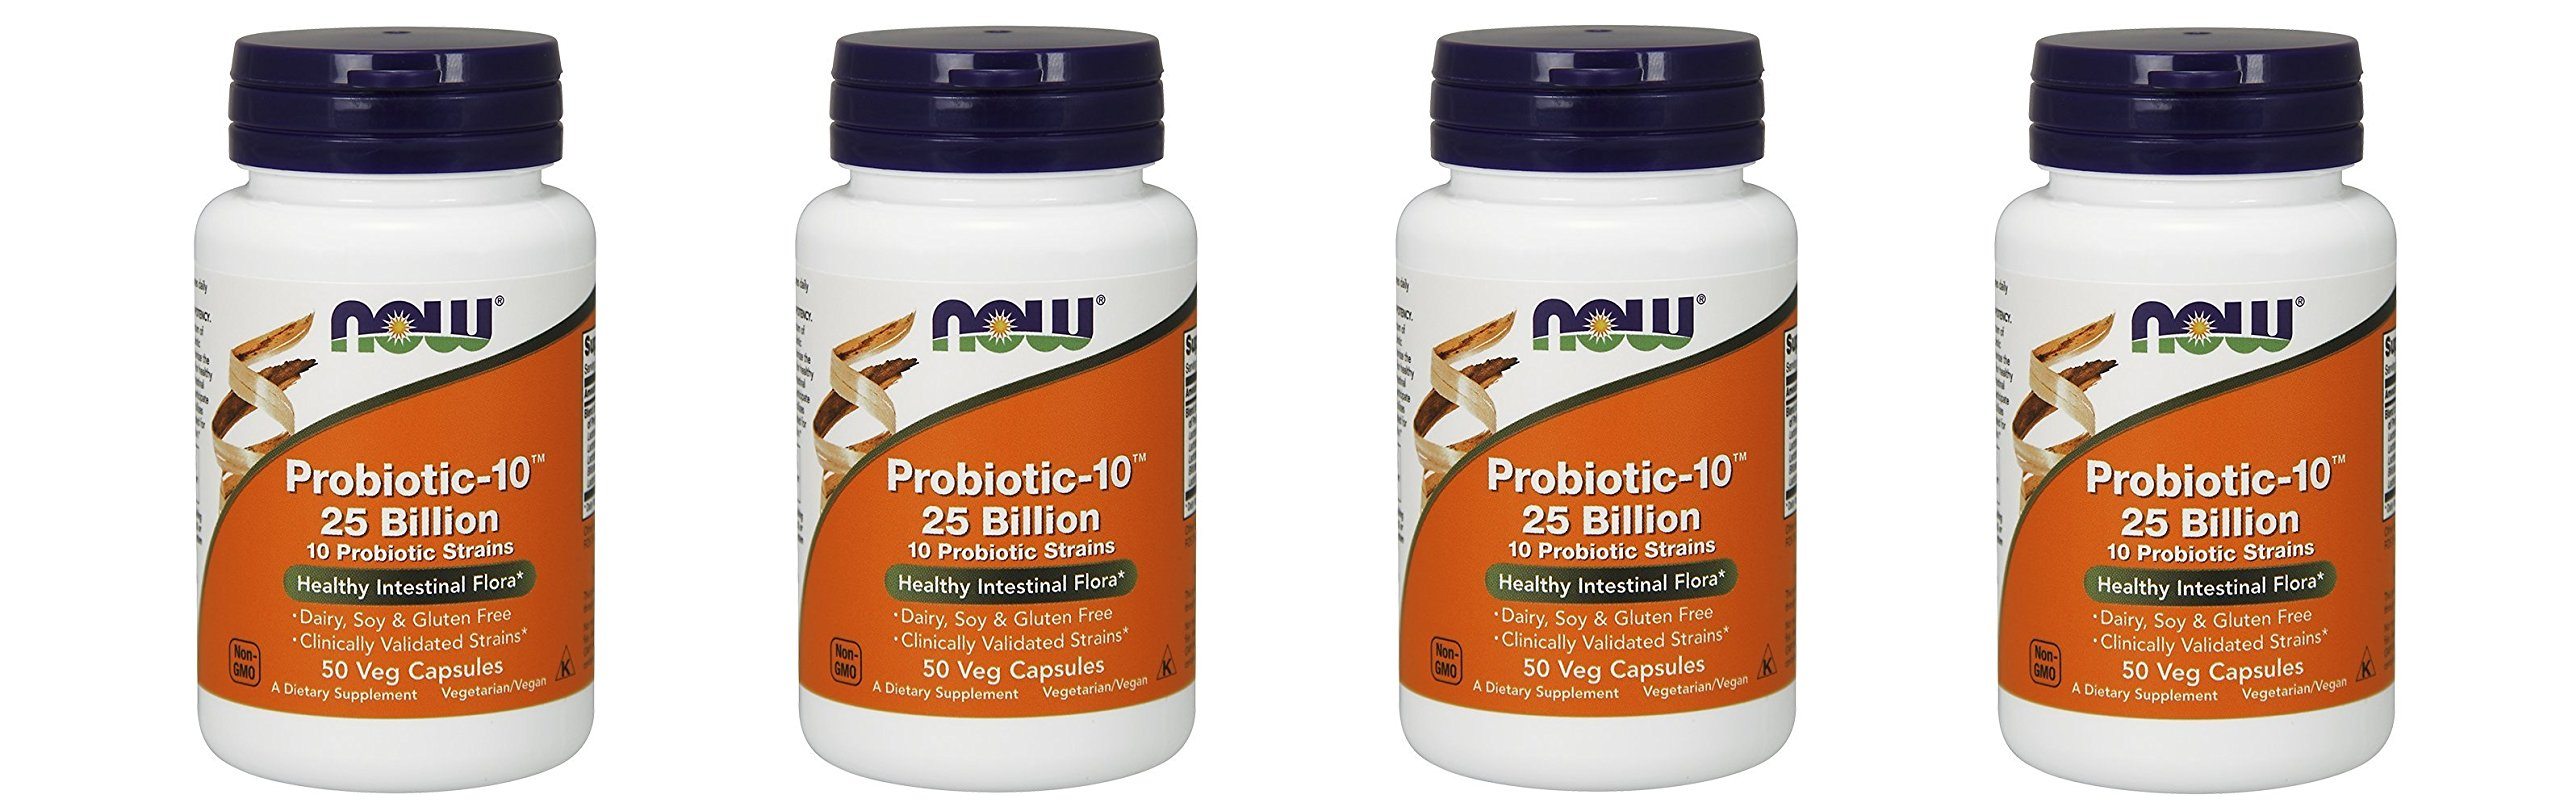 NOW Probiotic-10 25 Billion 200